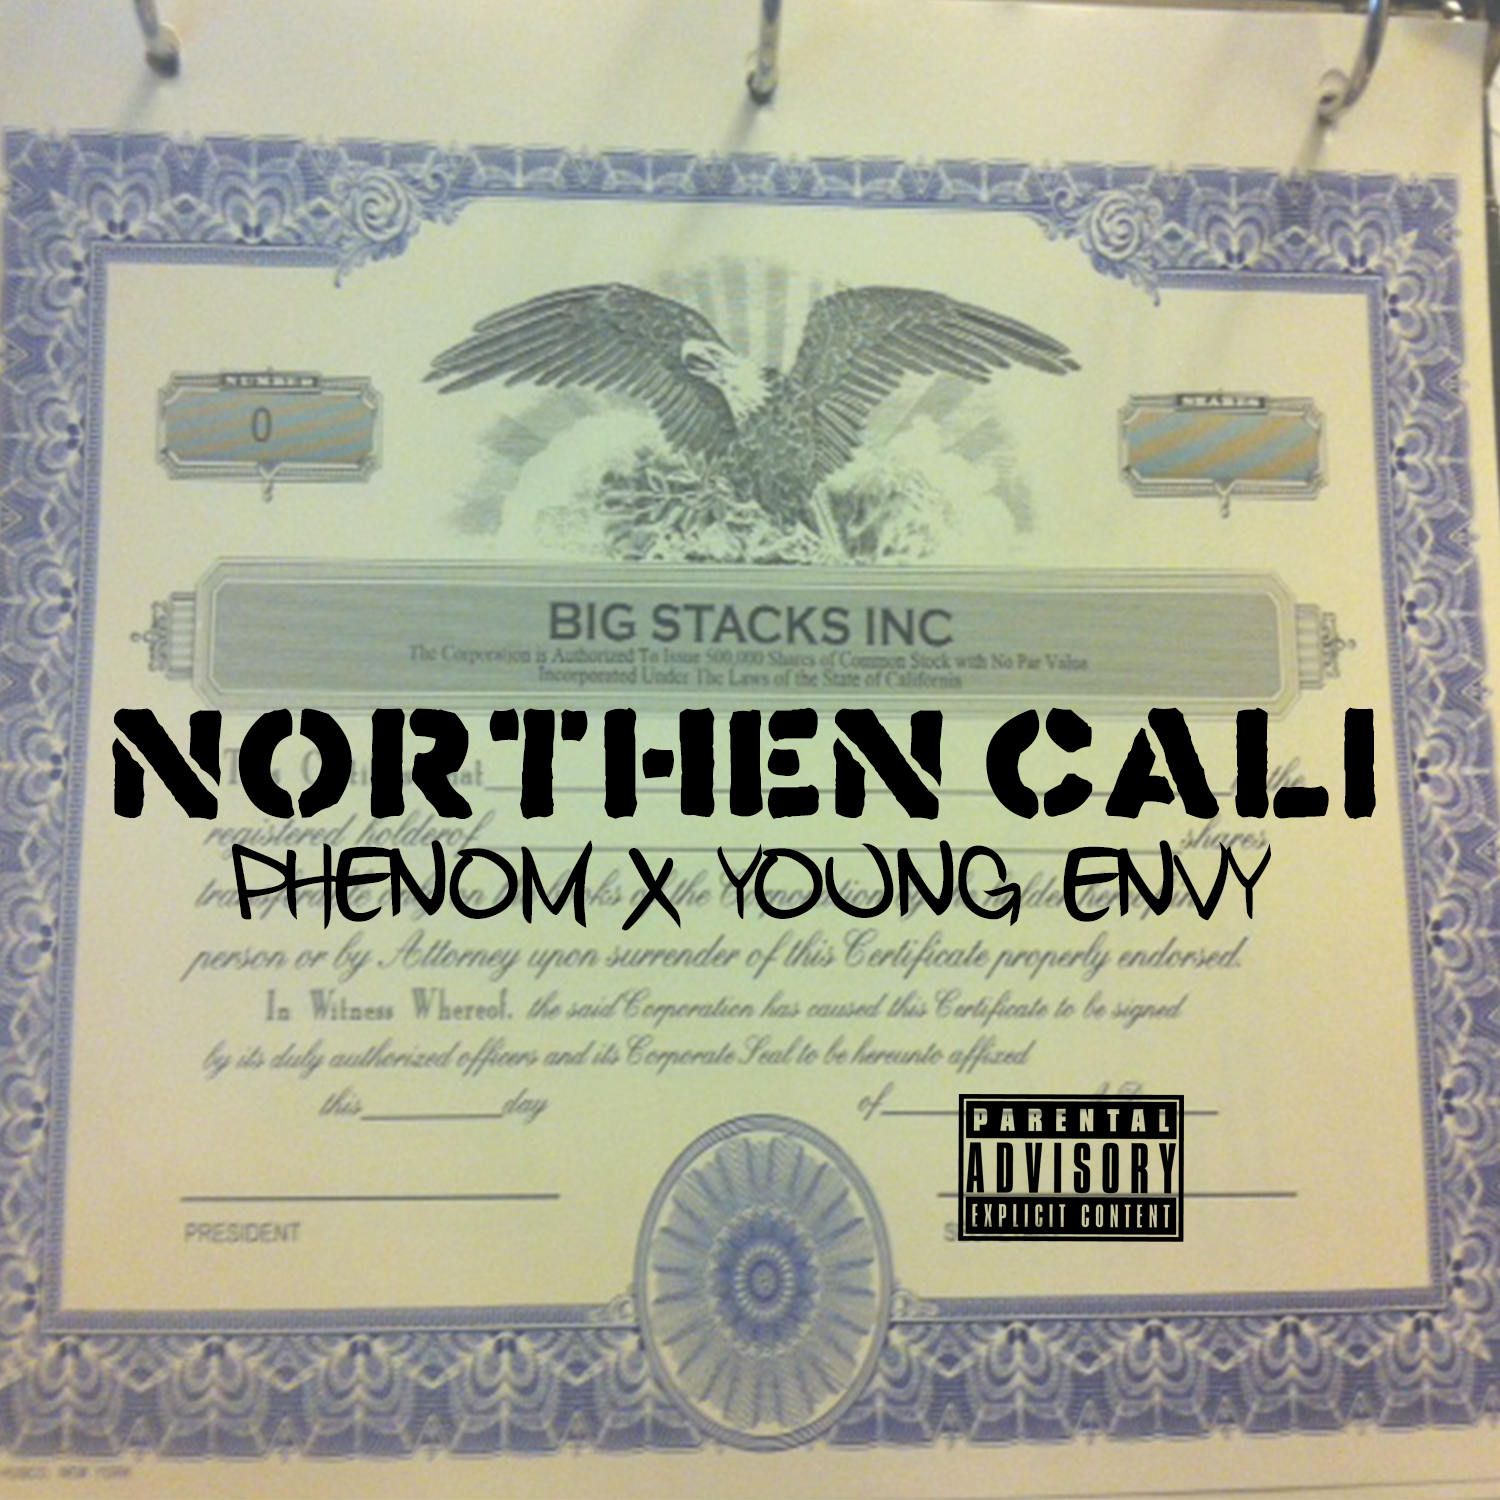 Phenom ft. Young Envy - Northern Cali [Thizzler.com Exclusive]